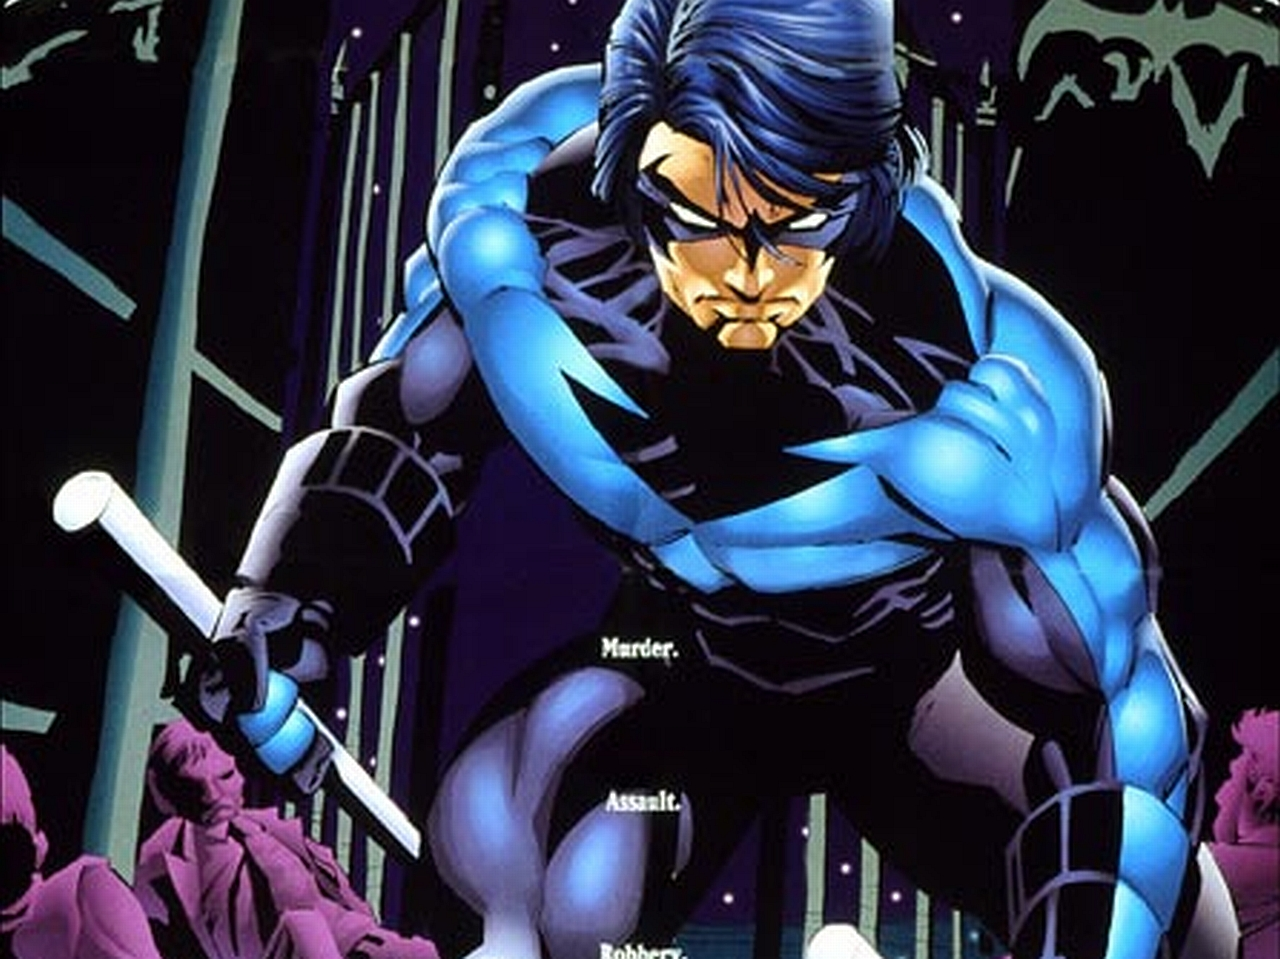 Nightwing Wallpaper Iphone Comics   nightwing wallpaper 1280x959